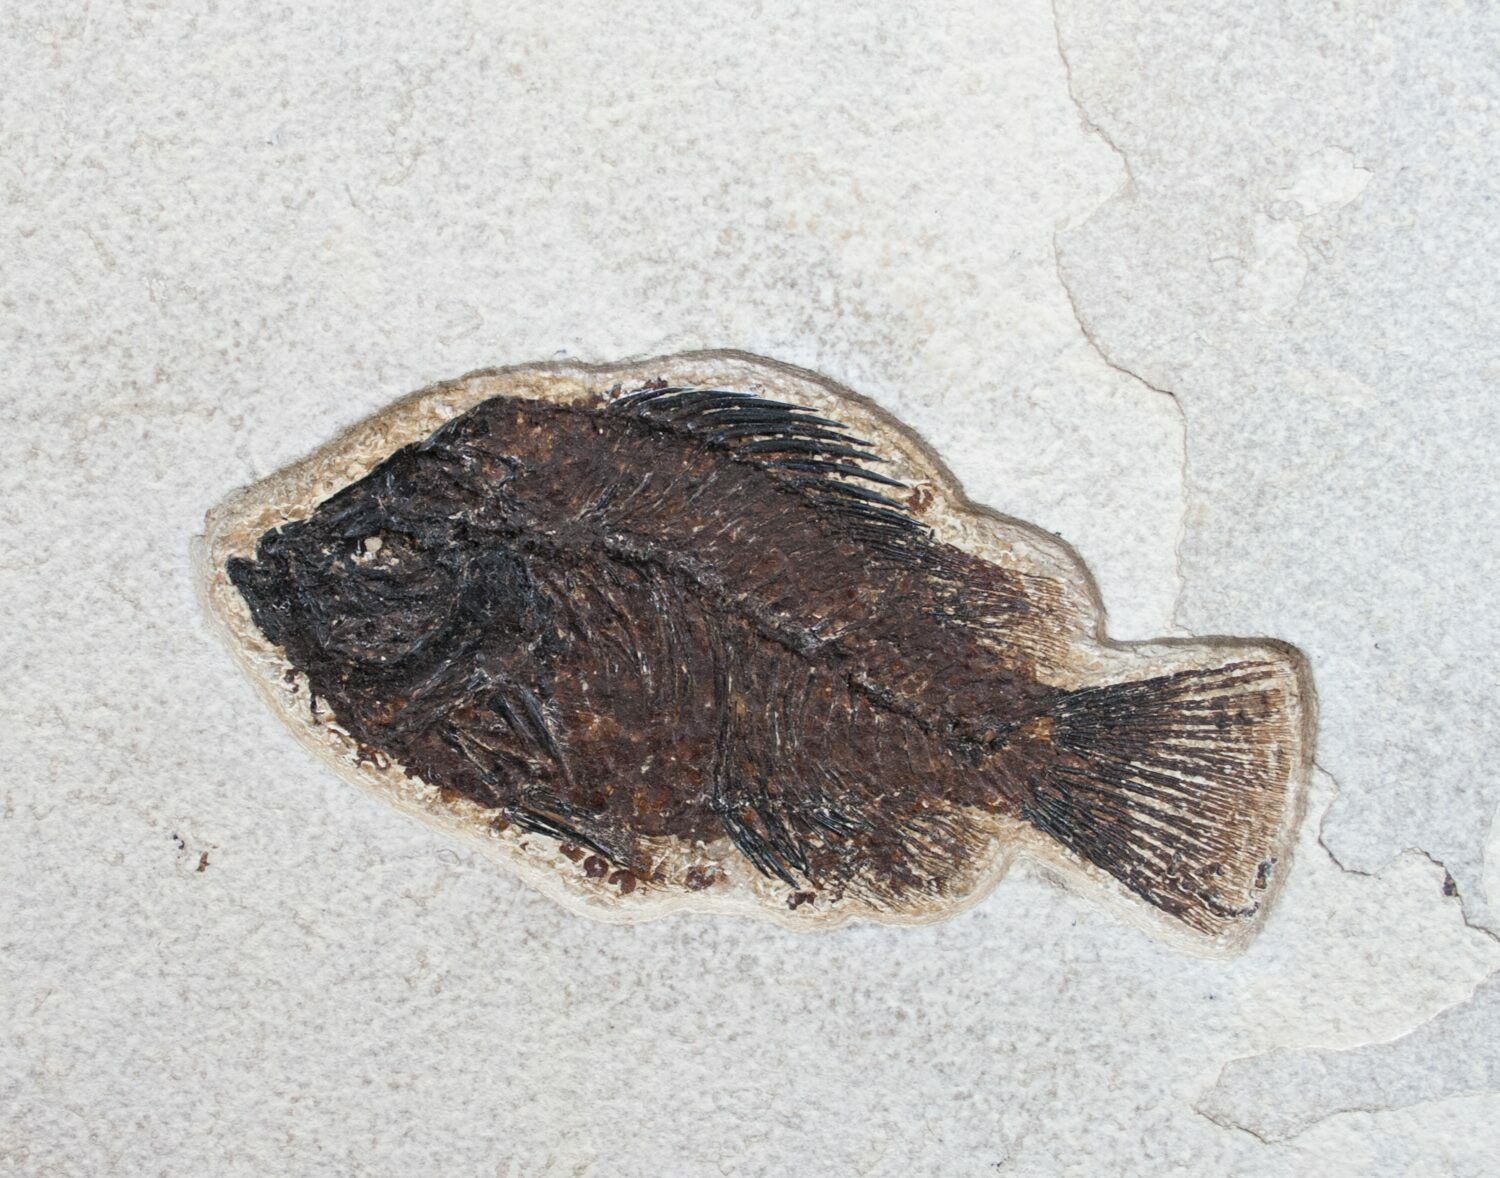 Prepare your own fossil fish kit priscacara for sale for Fish fossils for sale